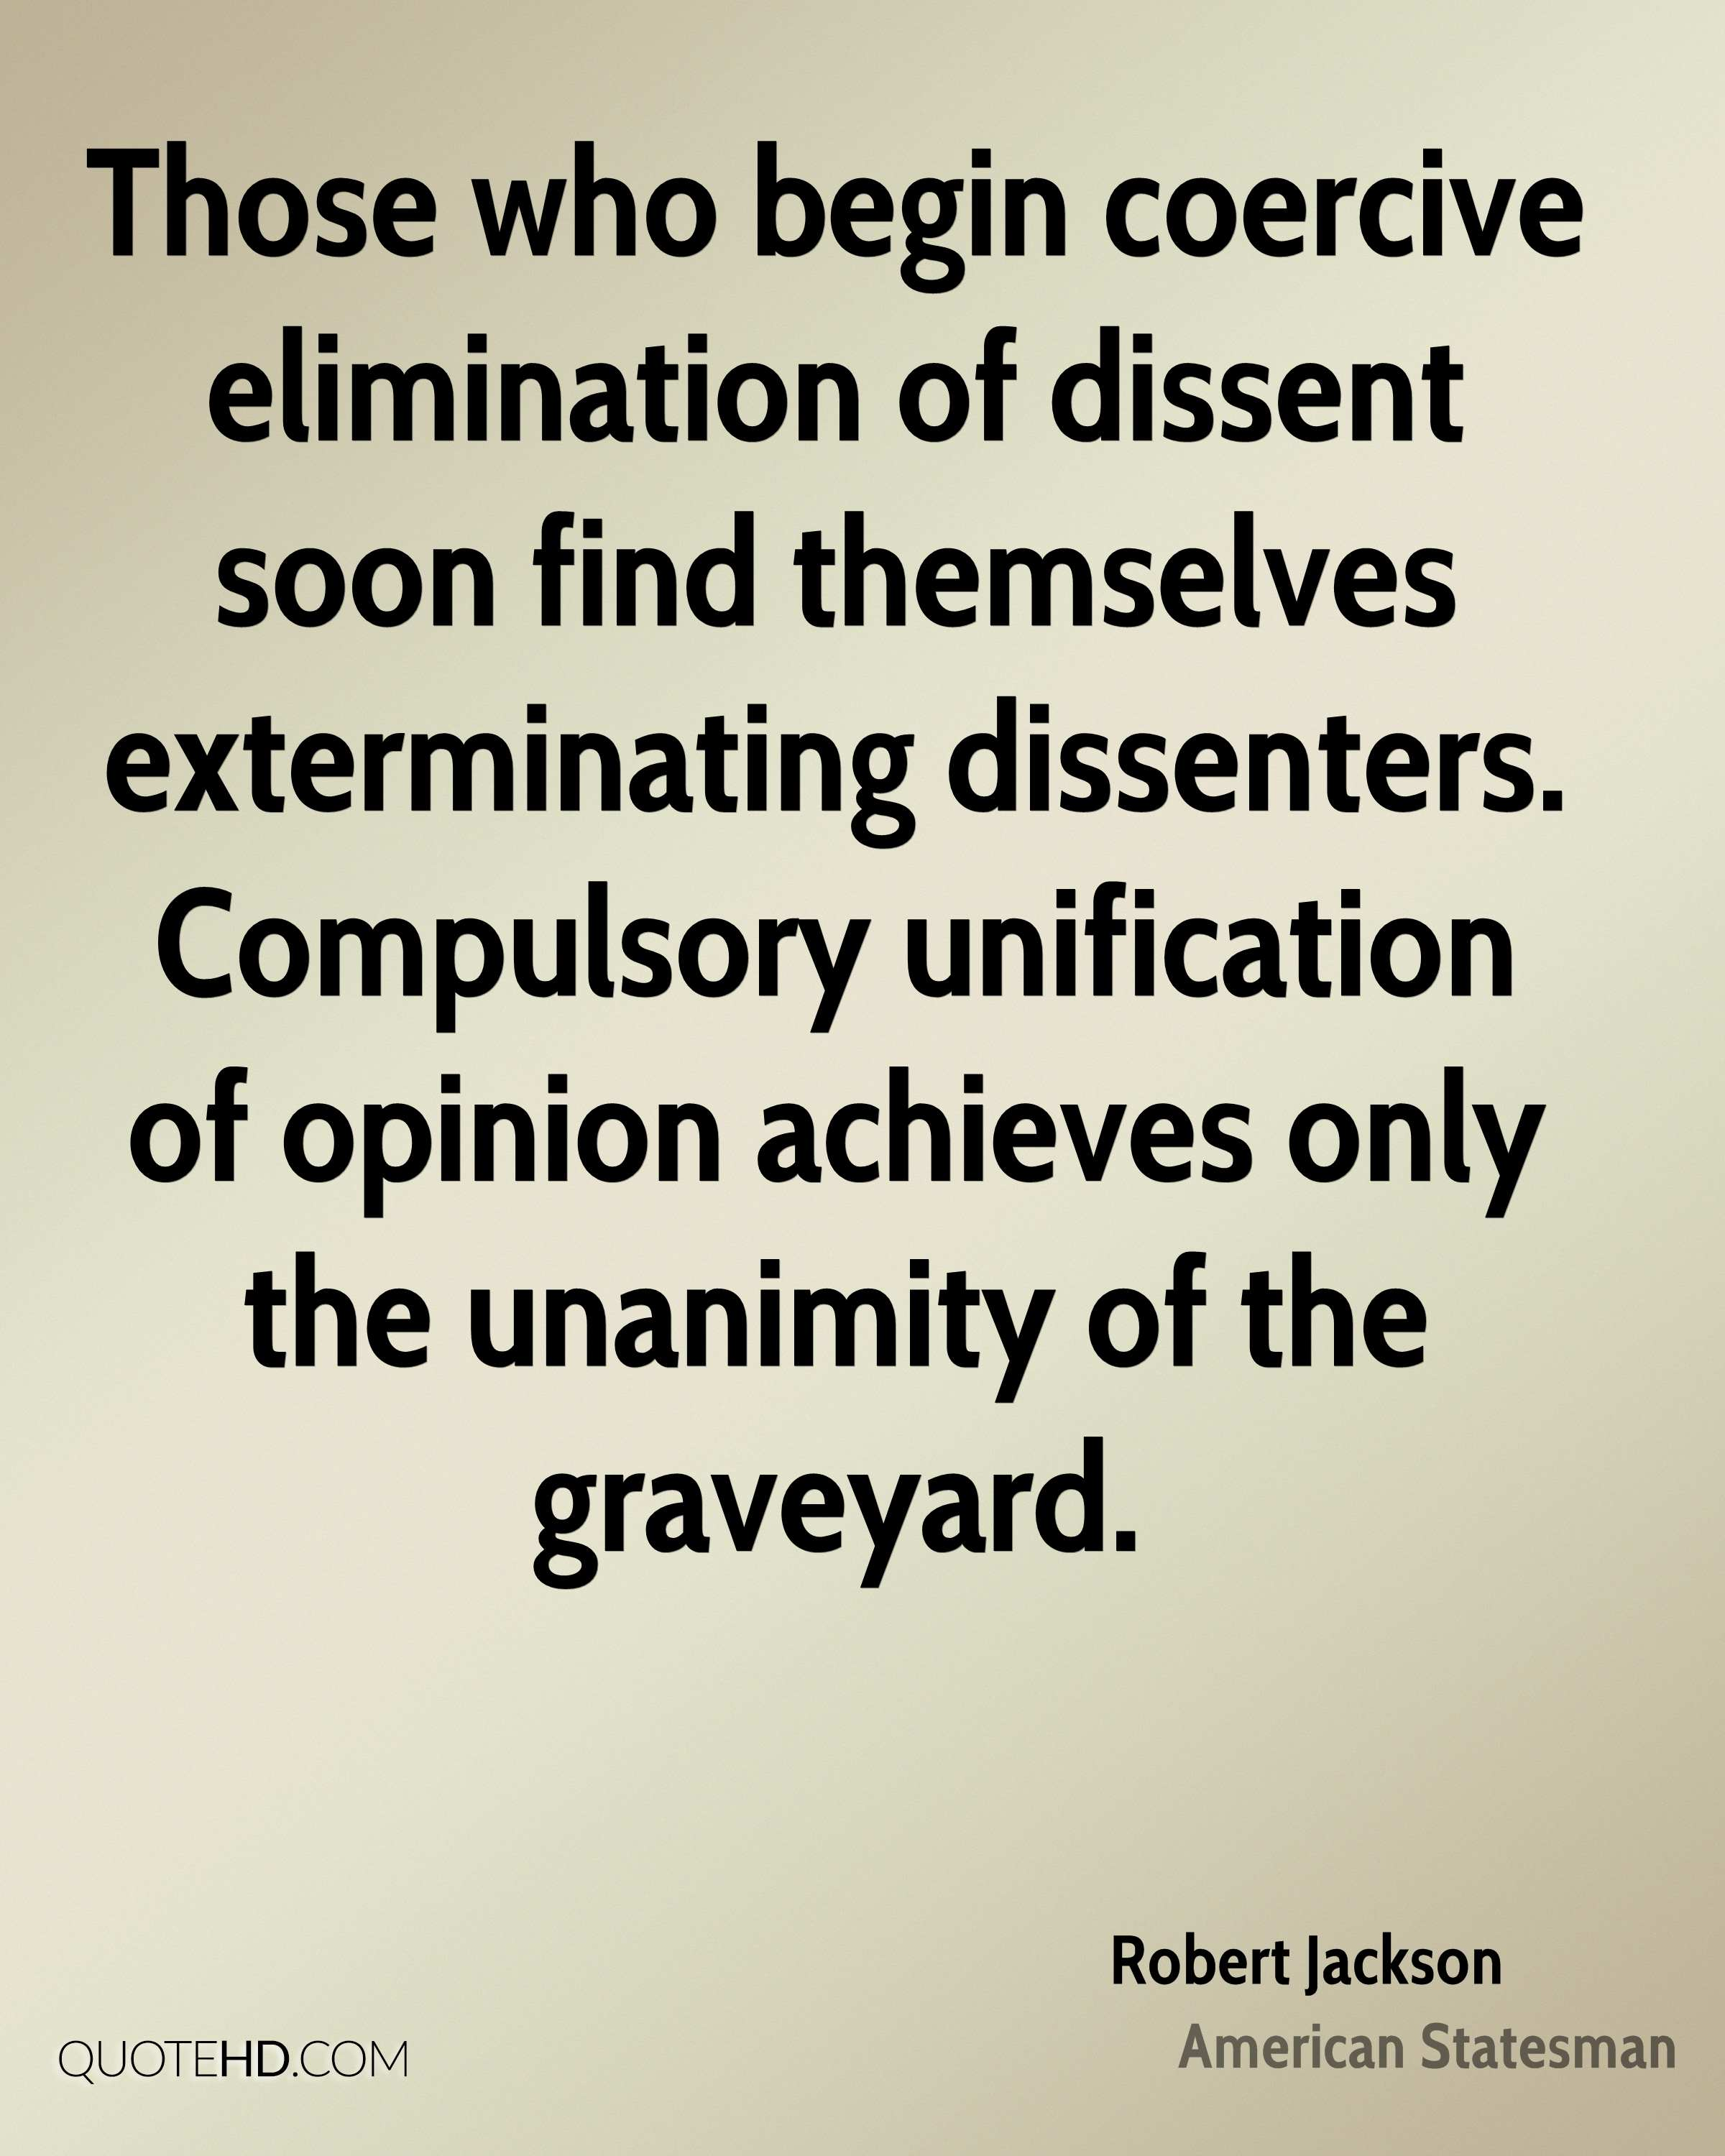 Those who begin coercive elimination of dissent soon find themselves exterminating dissenters. Compulsory unification of opinion achieves only the unanimity of the graveyard.